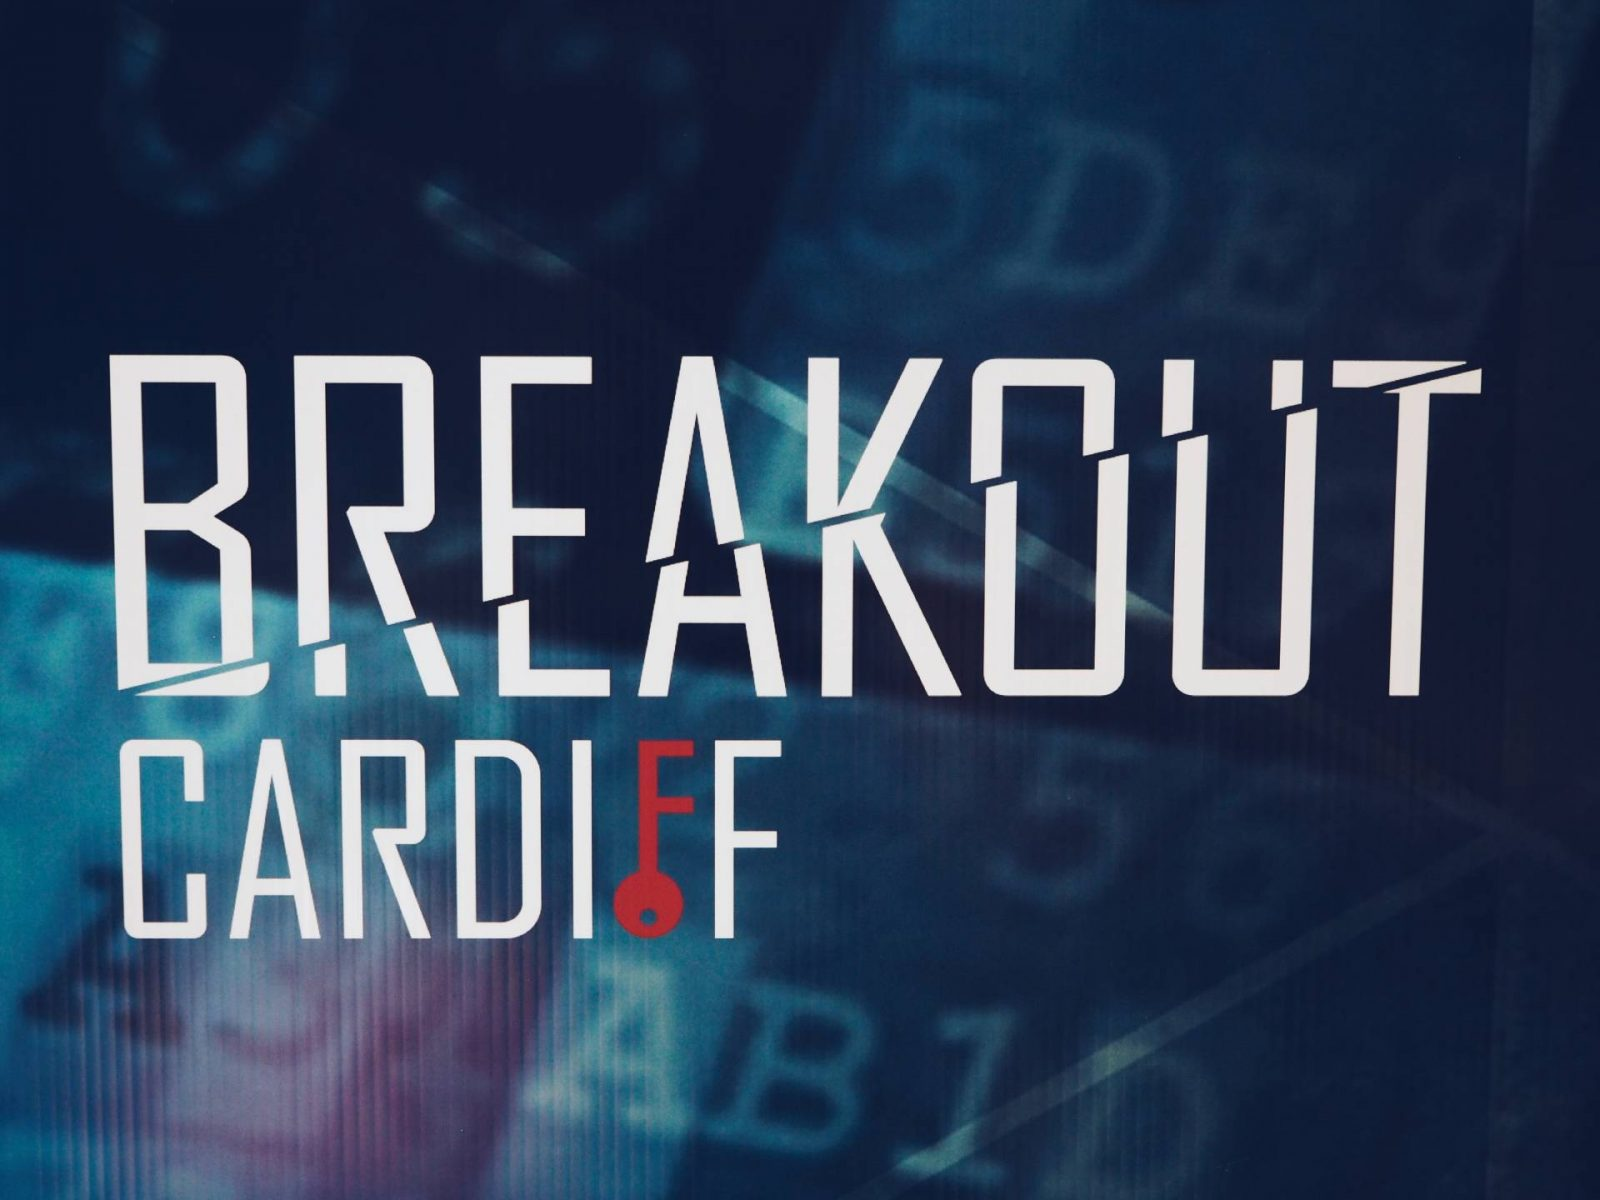 Breakout Cardiff, Brewery Quarter, Caroline Street, Escape rooms, Things to do in Cardiff, Days out, Lifestyle